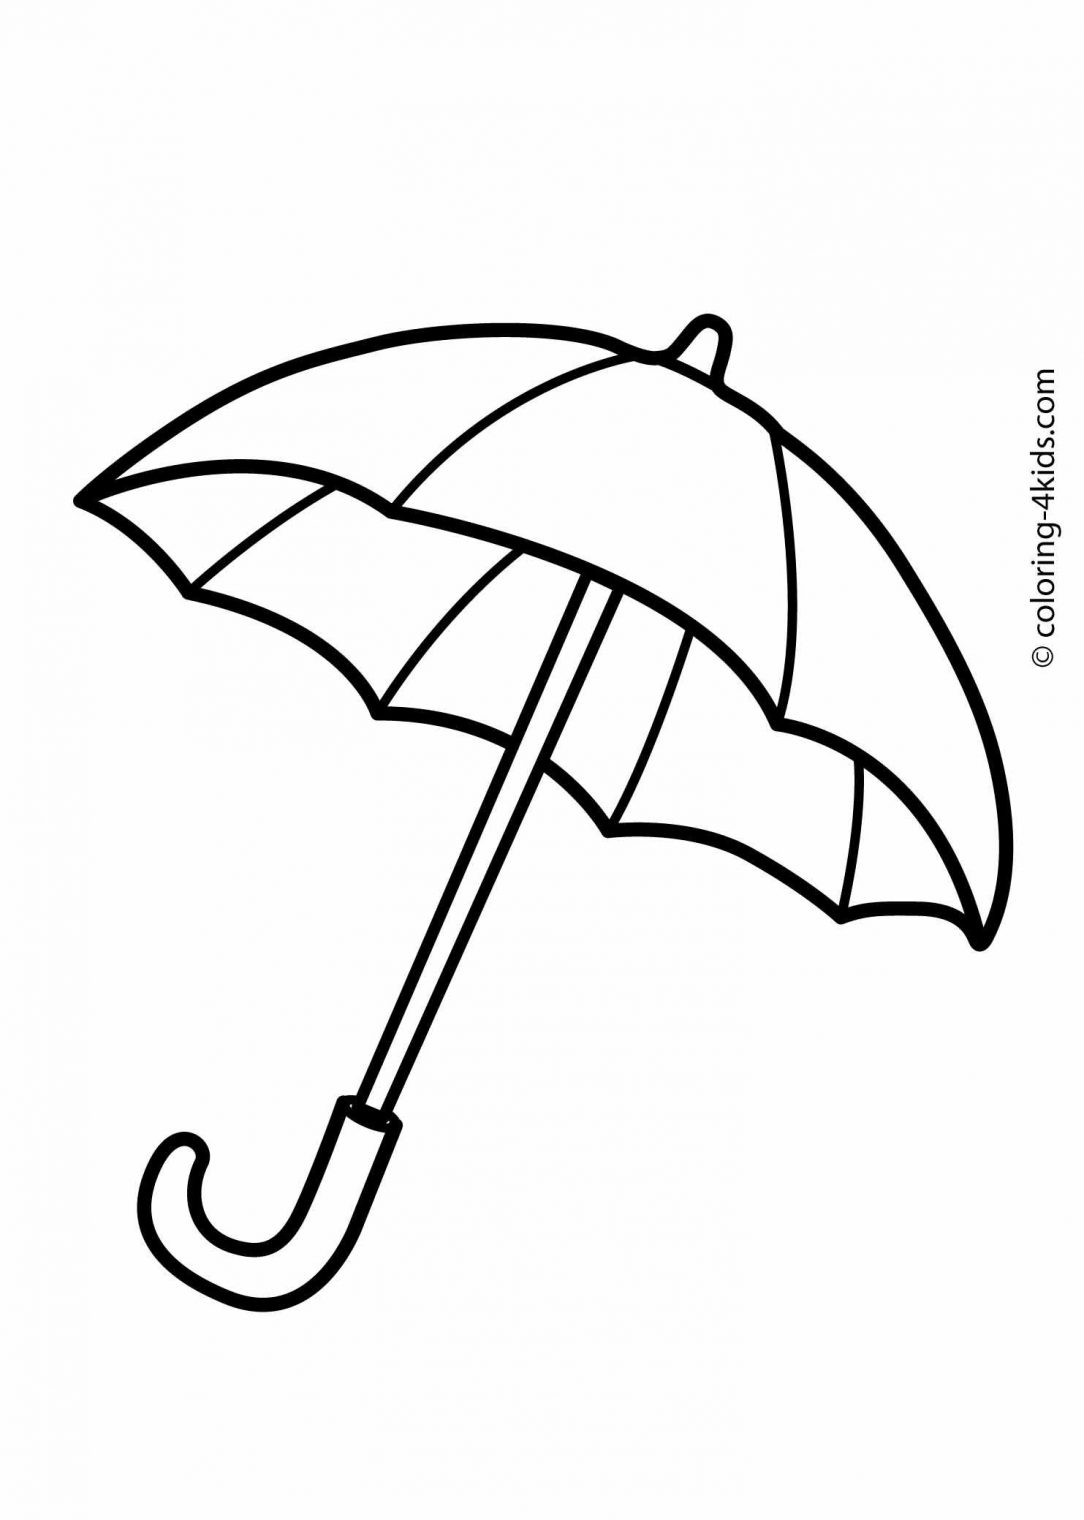 Drawing free download best. Raindrop clipart sketch